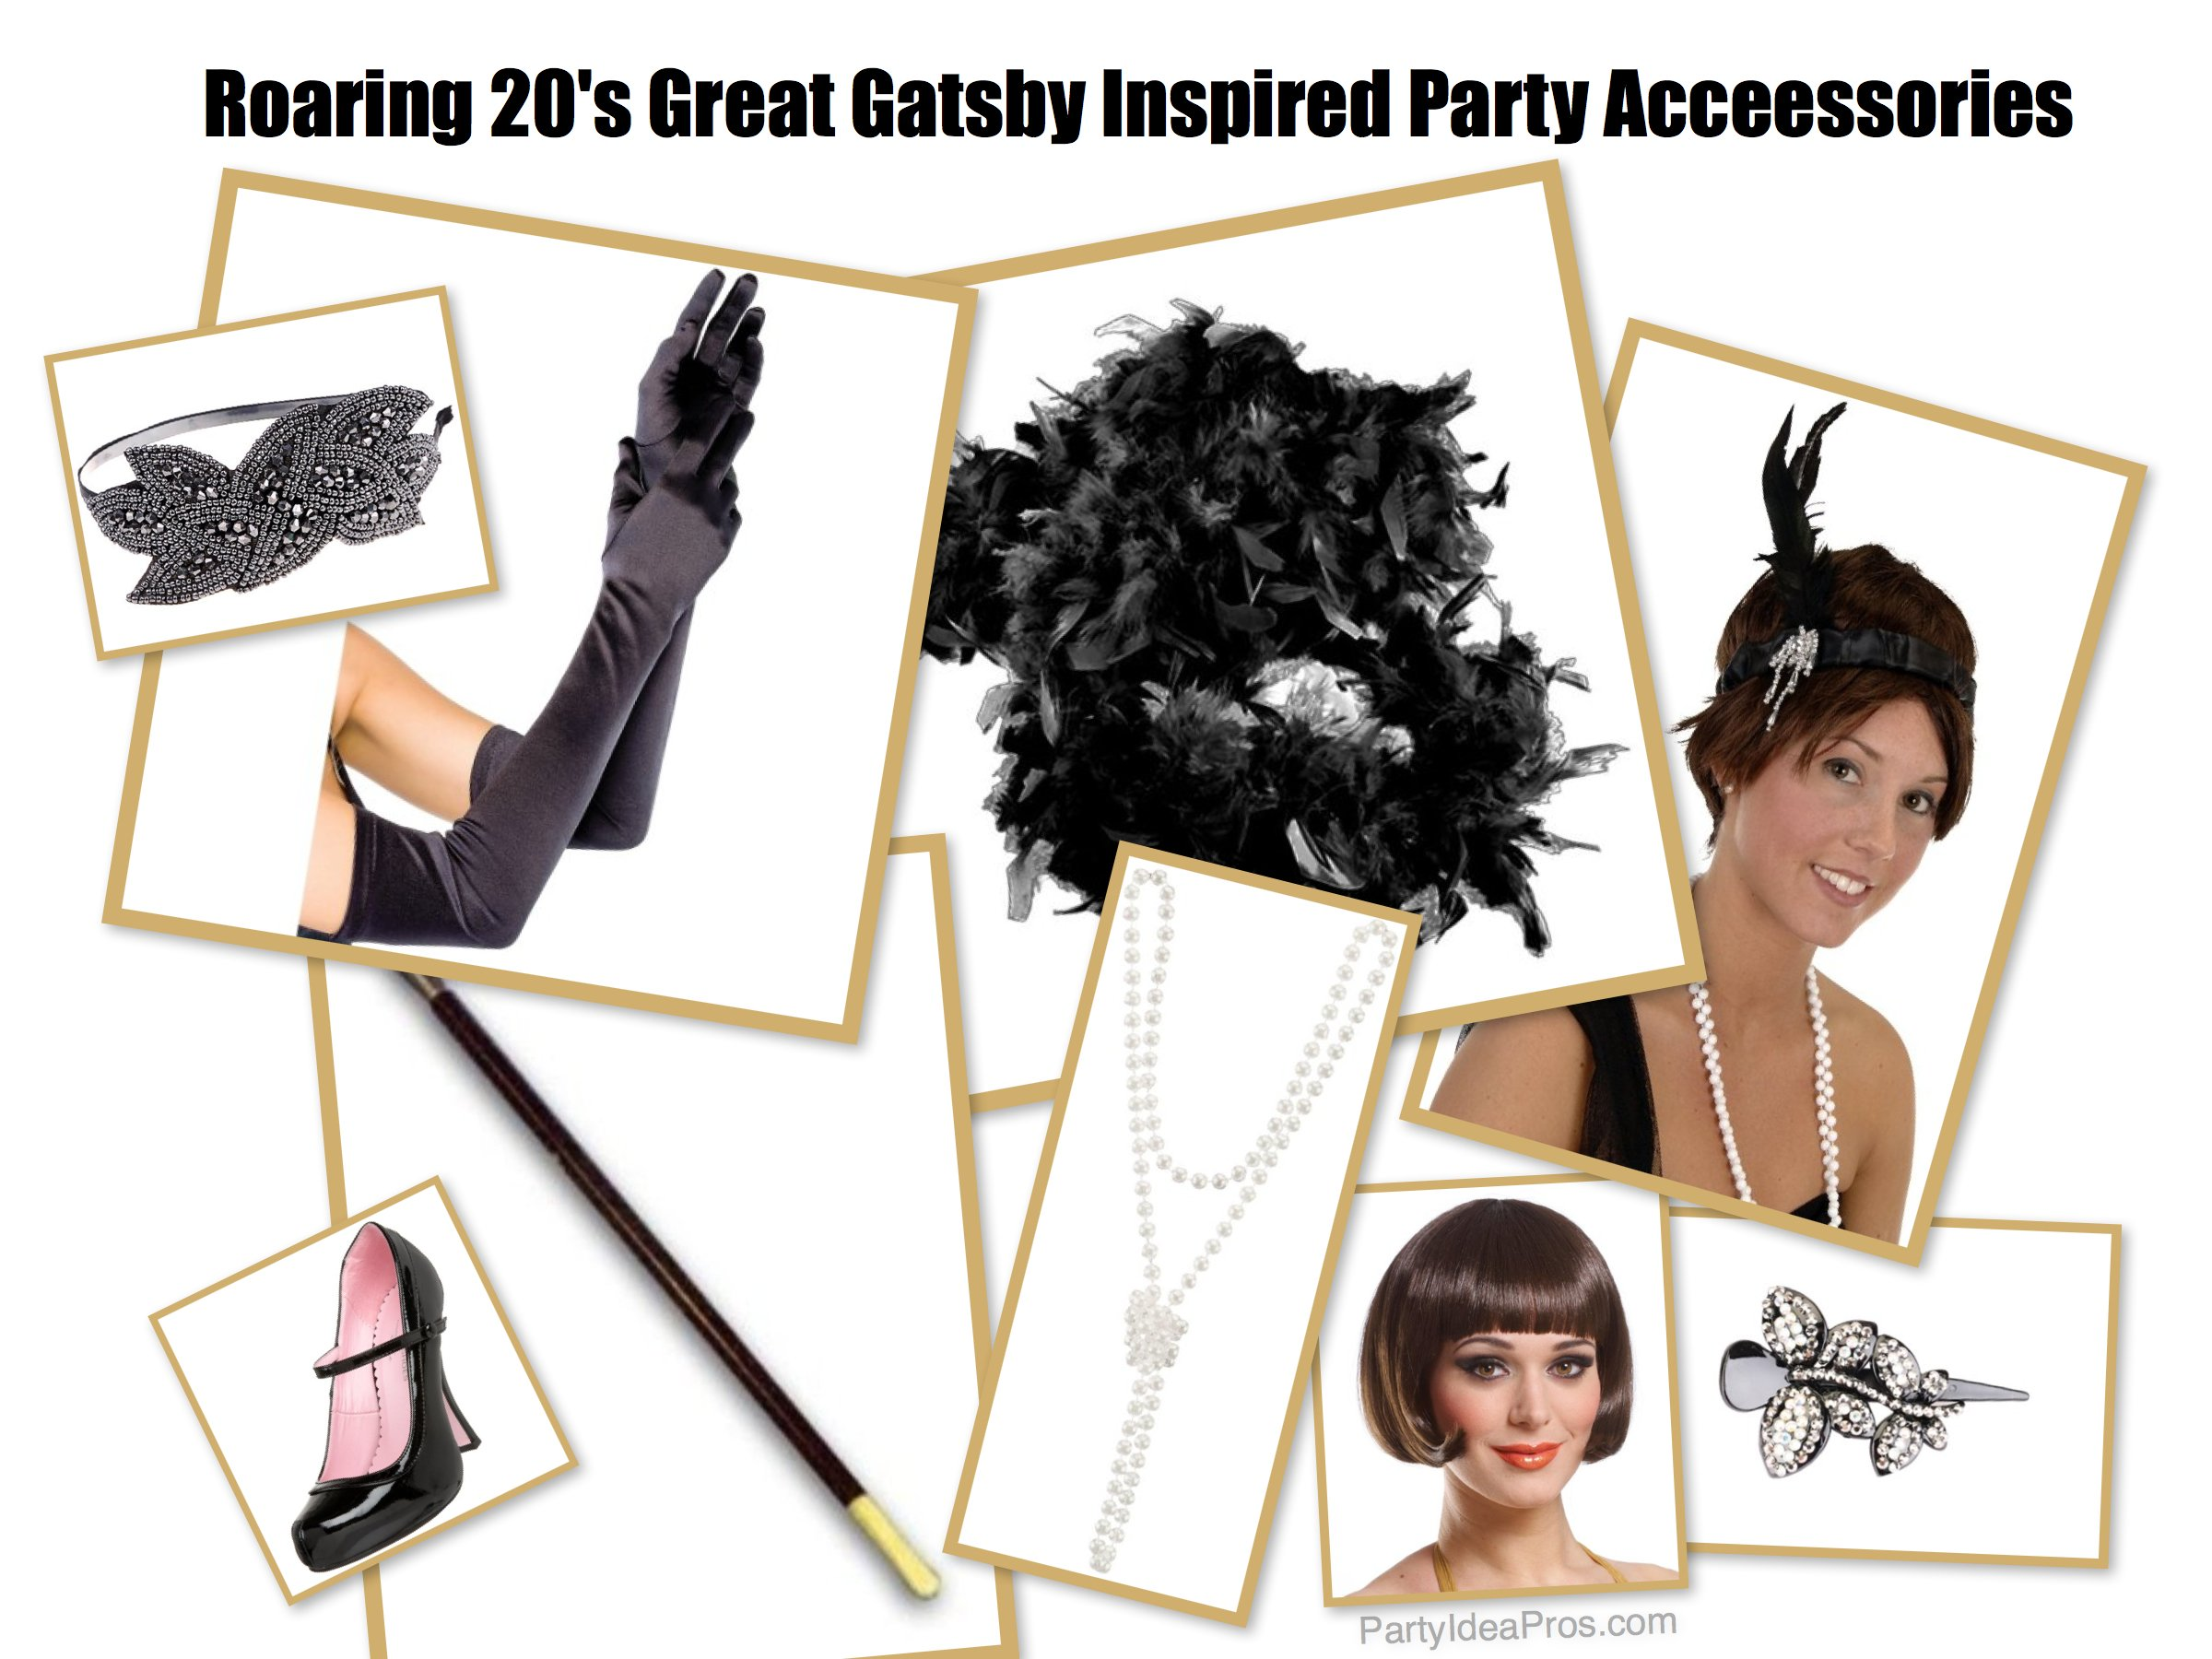 Great Gatsby Party Dress Code